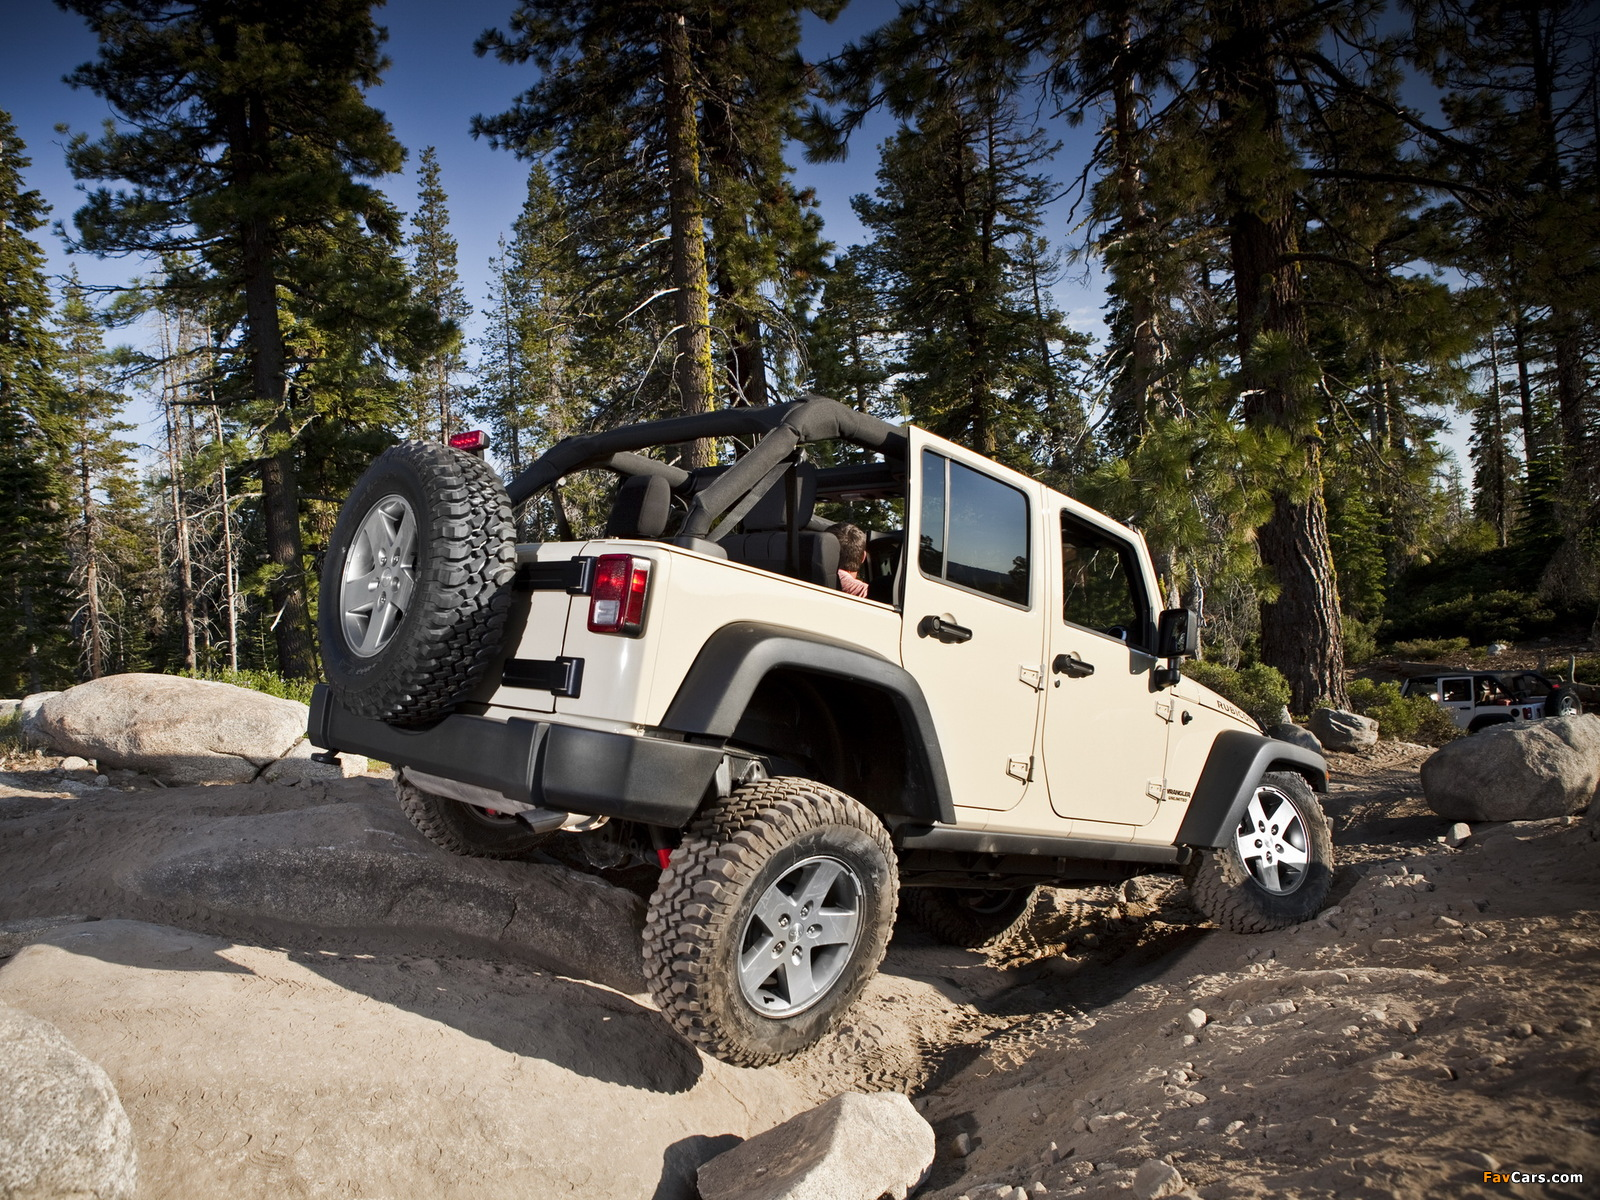 Jeep Wrangler Unlimited Rubicon (JK) 2010 pictures (1600 x 1200)